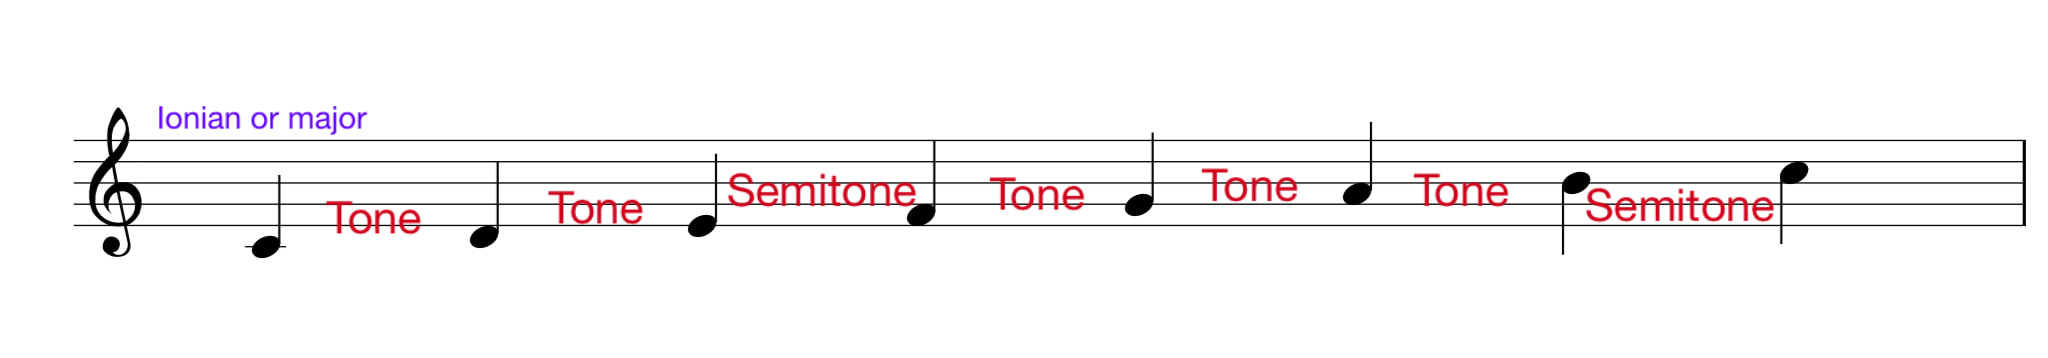 Ionian or major scale